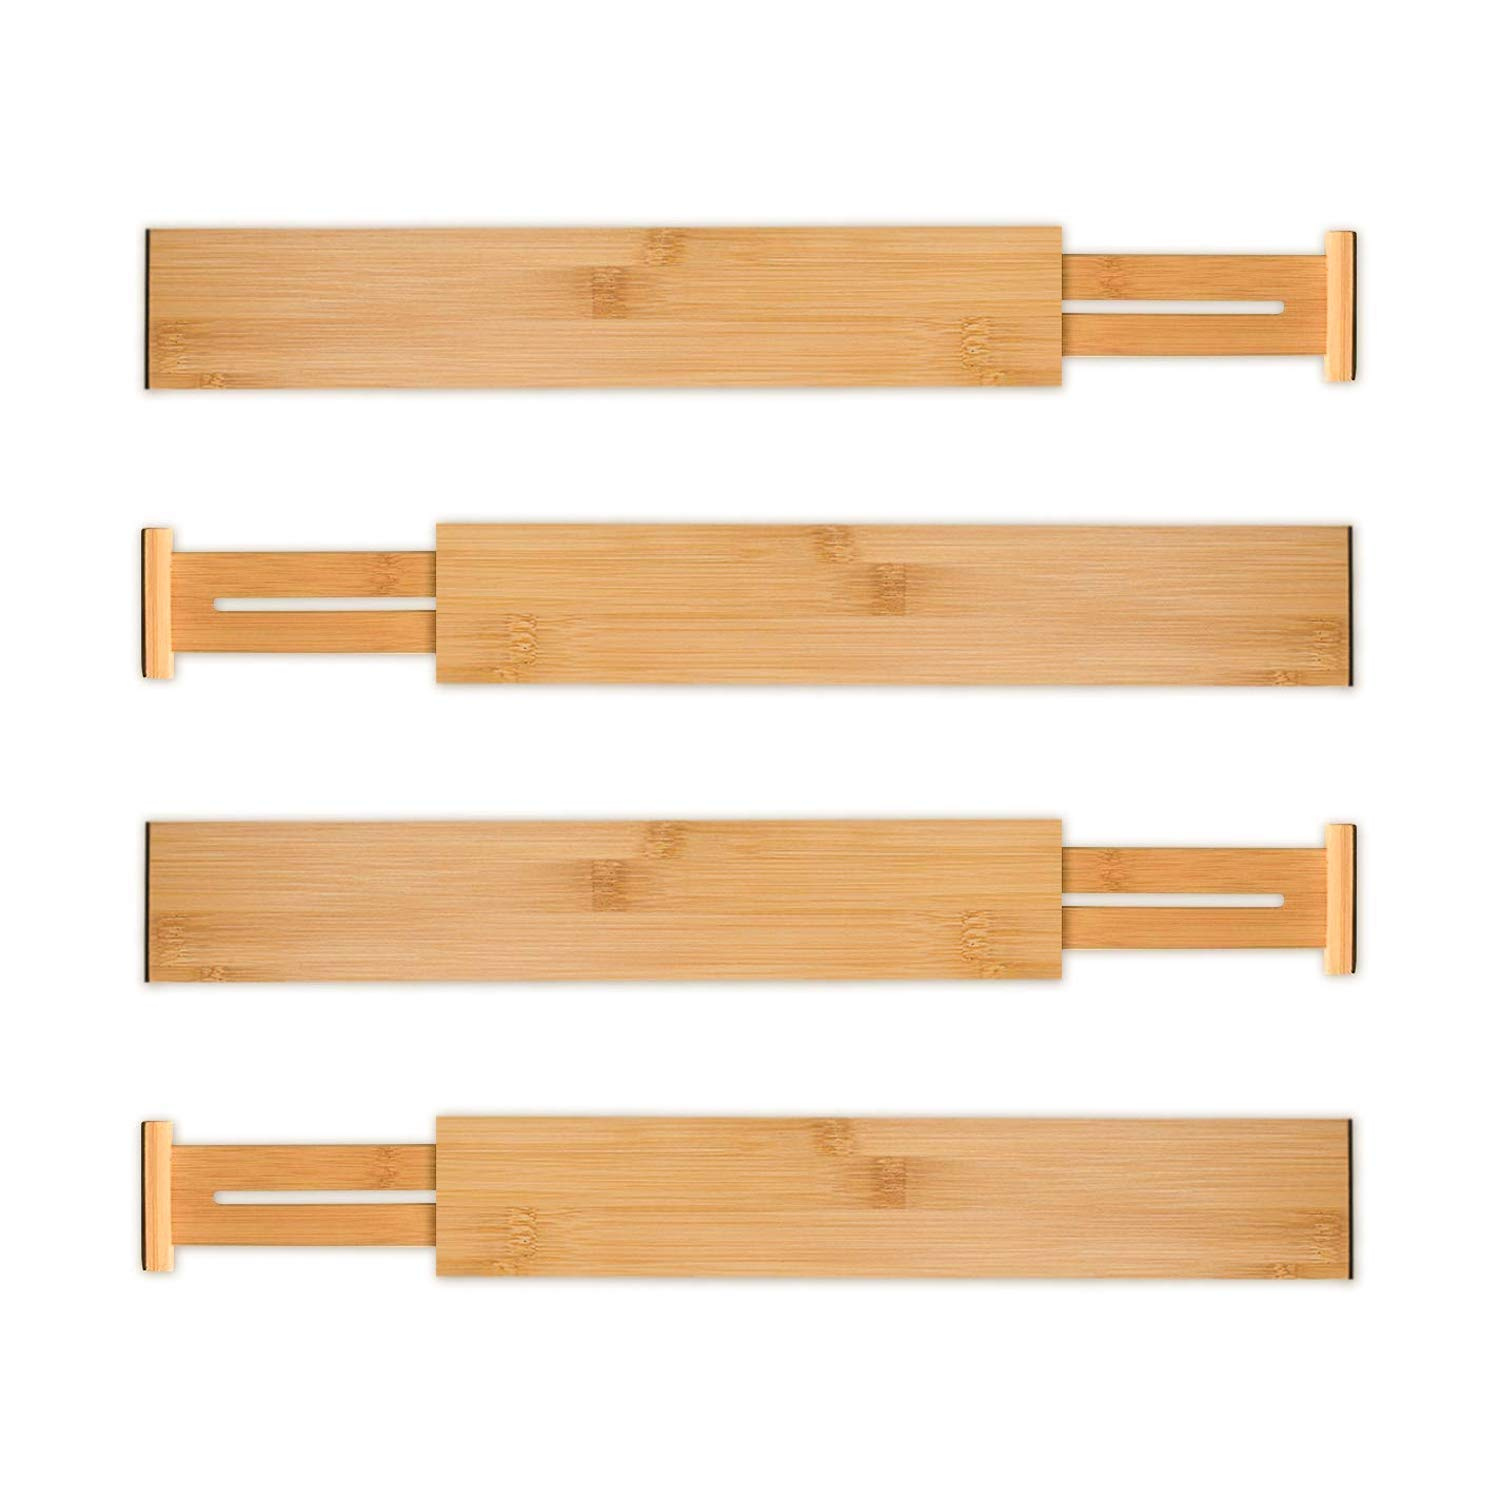 Utoplike 4 Pack Bamboo Kitchen Drawer Dividers(12-17.25IN),Adjustable Drawer Organizers,Spring Loaded,Works in Kitchen,Dresser,Bathroom,Bedroom,Baby Drawer,Desk